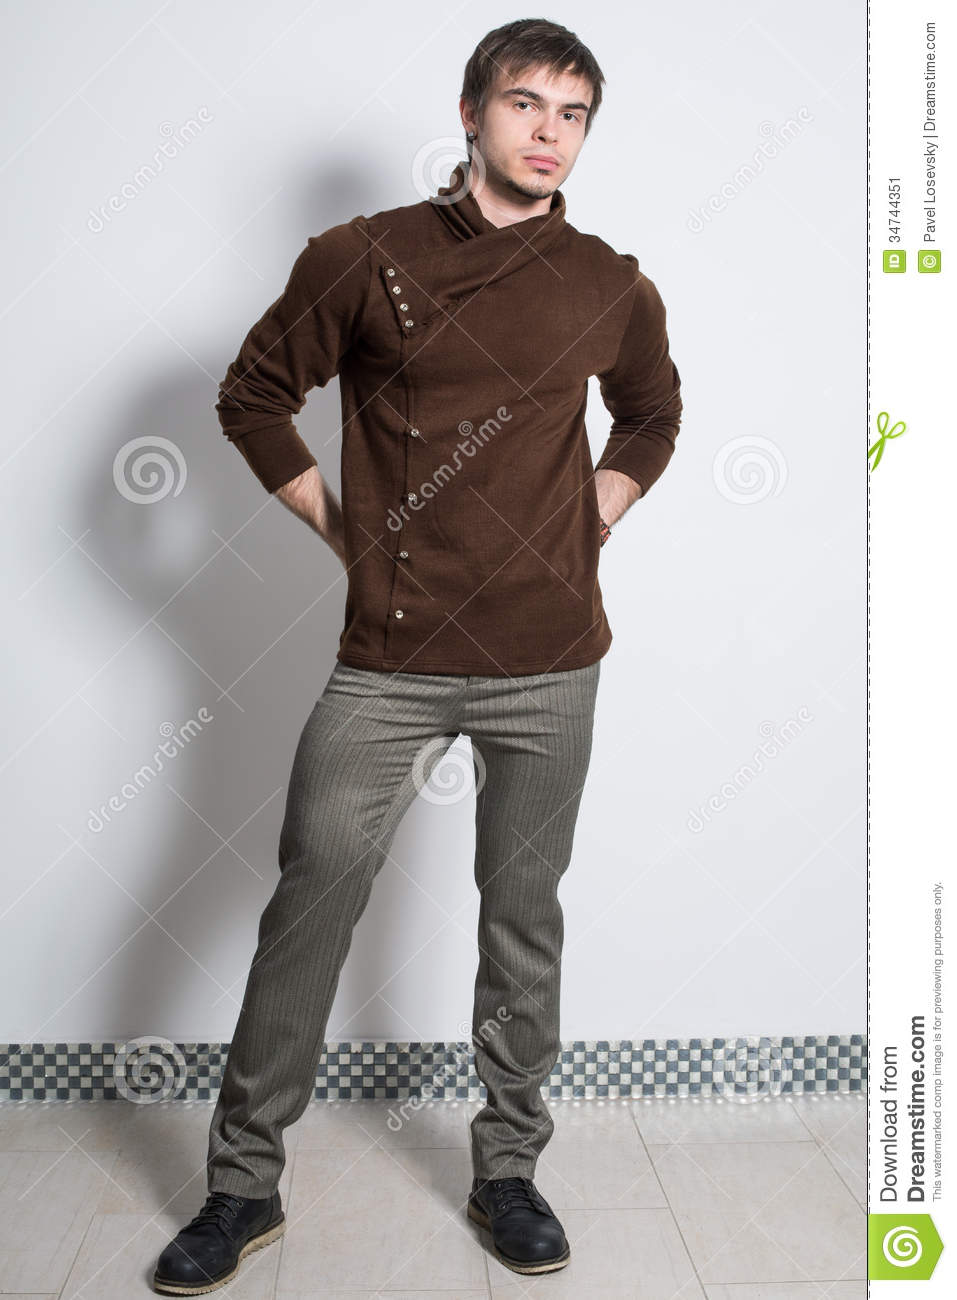 The Man In Gray Trousers And Fashionable Brown Sweater